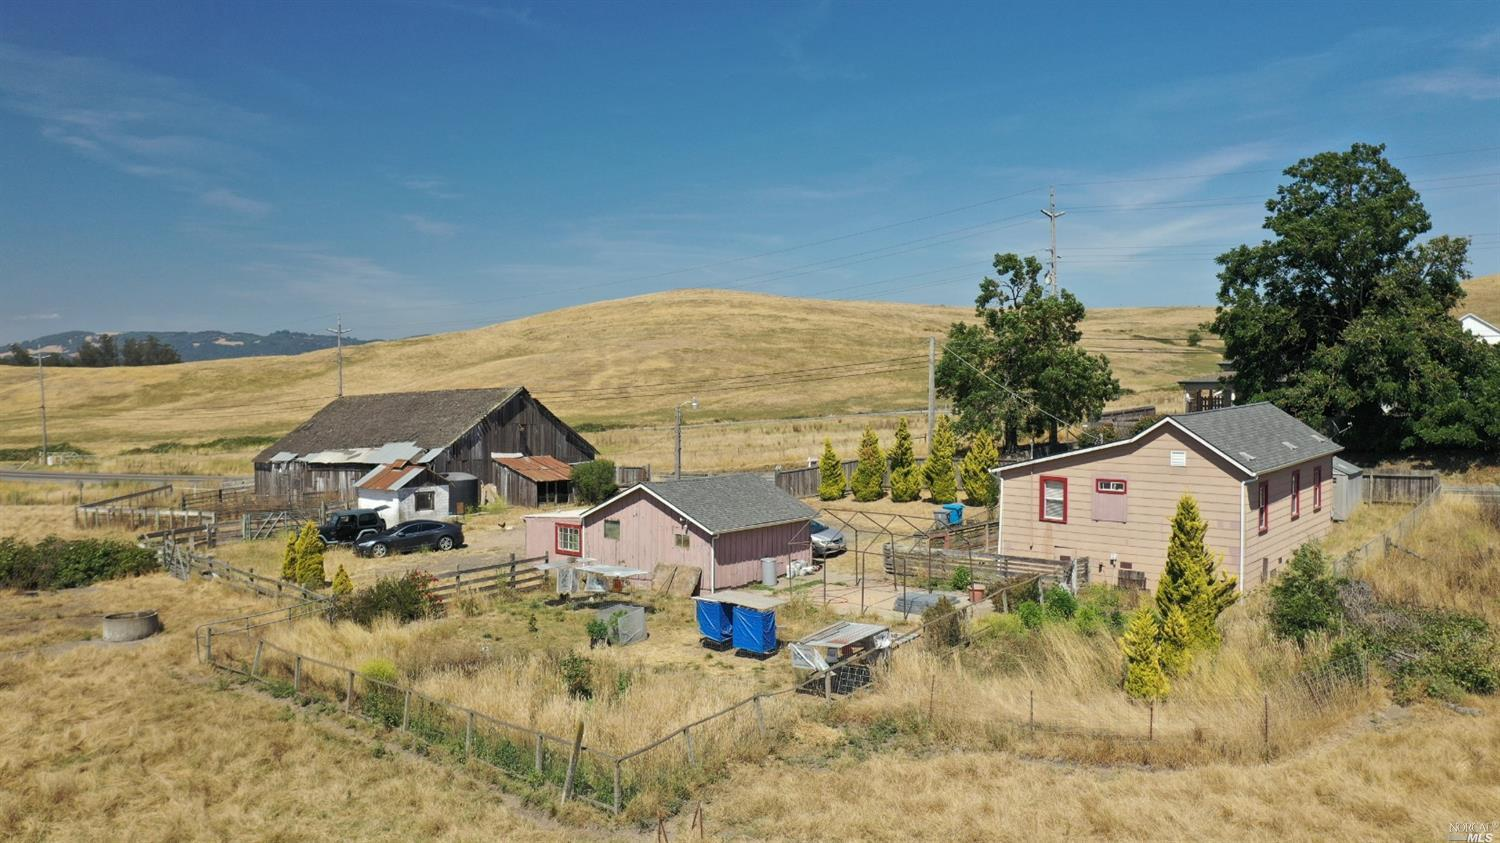 Location,location! Close in 48 acre ranch property under Williamson Act, owner help with some financing to a qualified buyer, farmhouse  with detached 2 car garage, large barn creek running through the property. Great for horses, cattle & future investment.